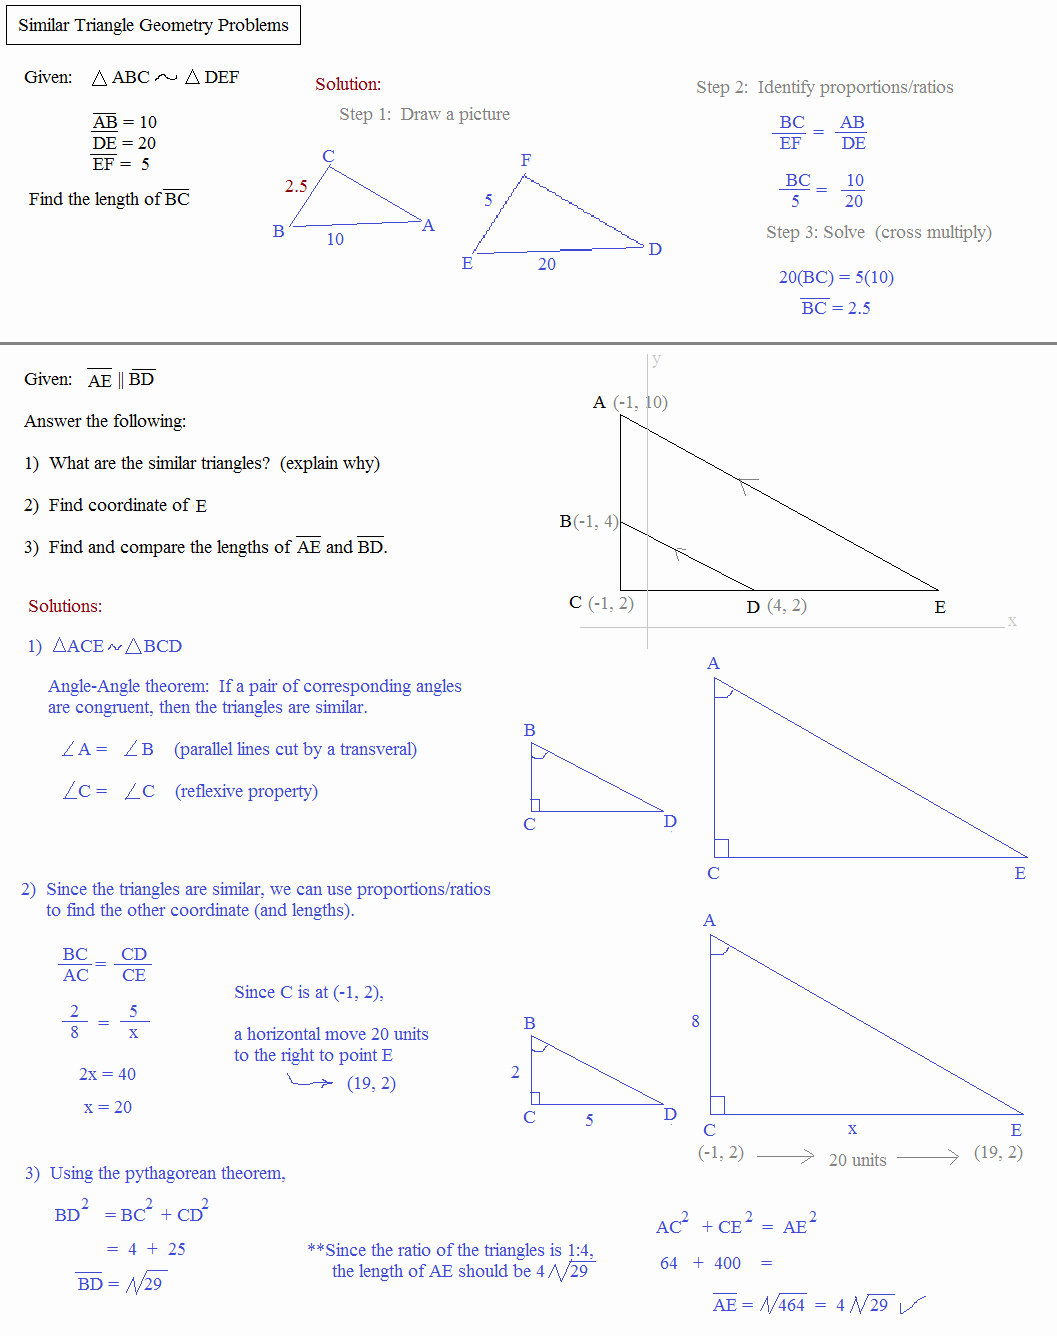 Similar Right Triangles Worksheet Lovely theorems for Similar Triangles Worksheet Answers